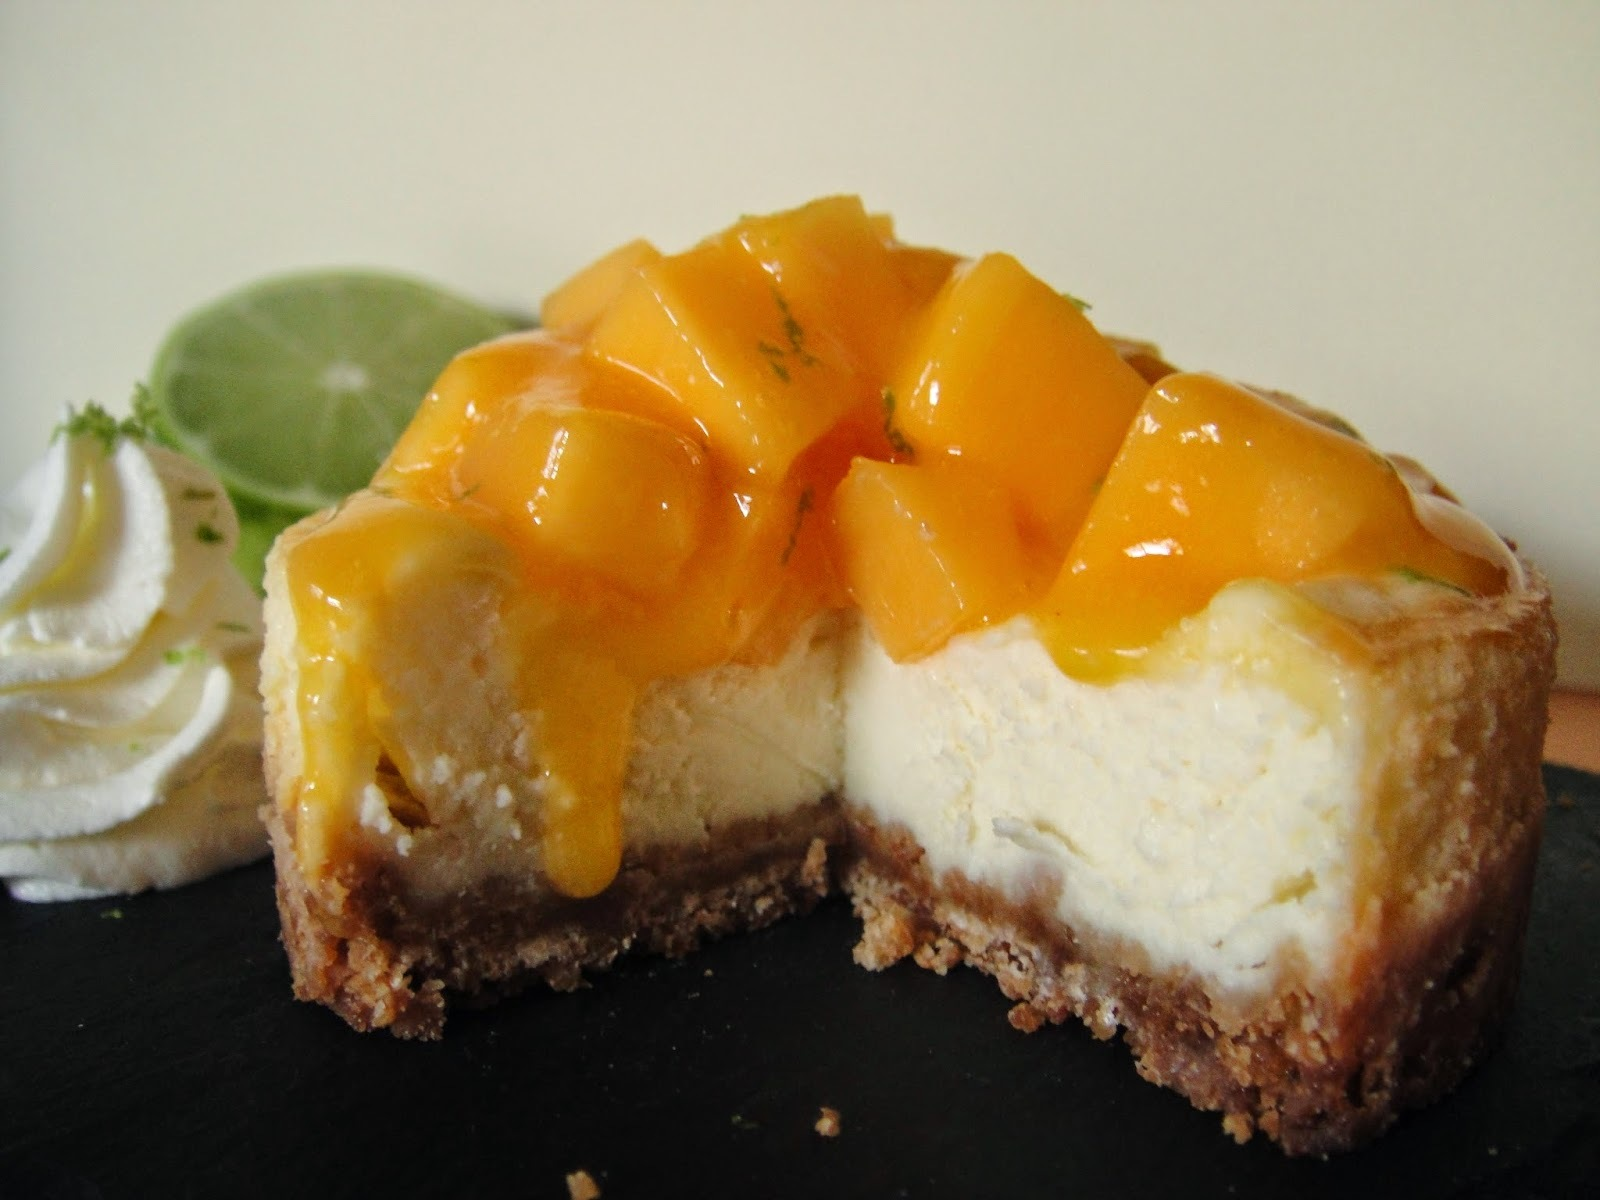 Cheesecake fruit de la passion & mangue - chantilly au citron vert (recette de Christophe Michalak)